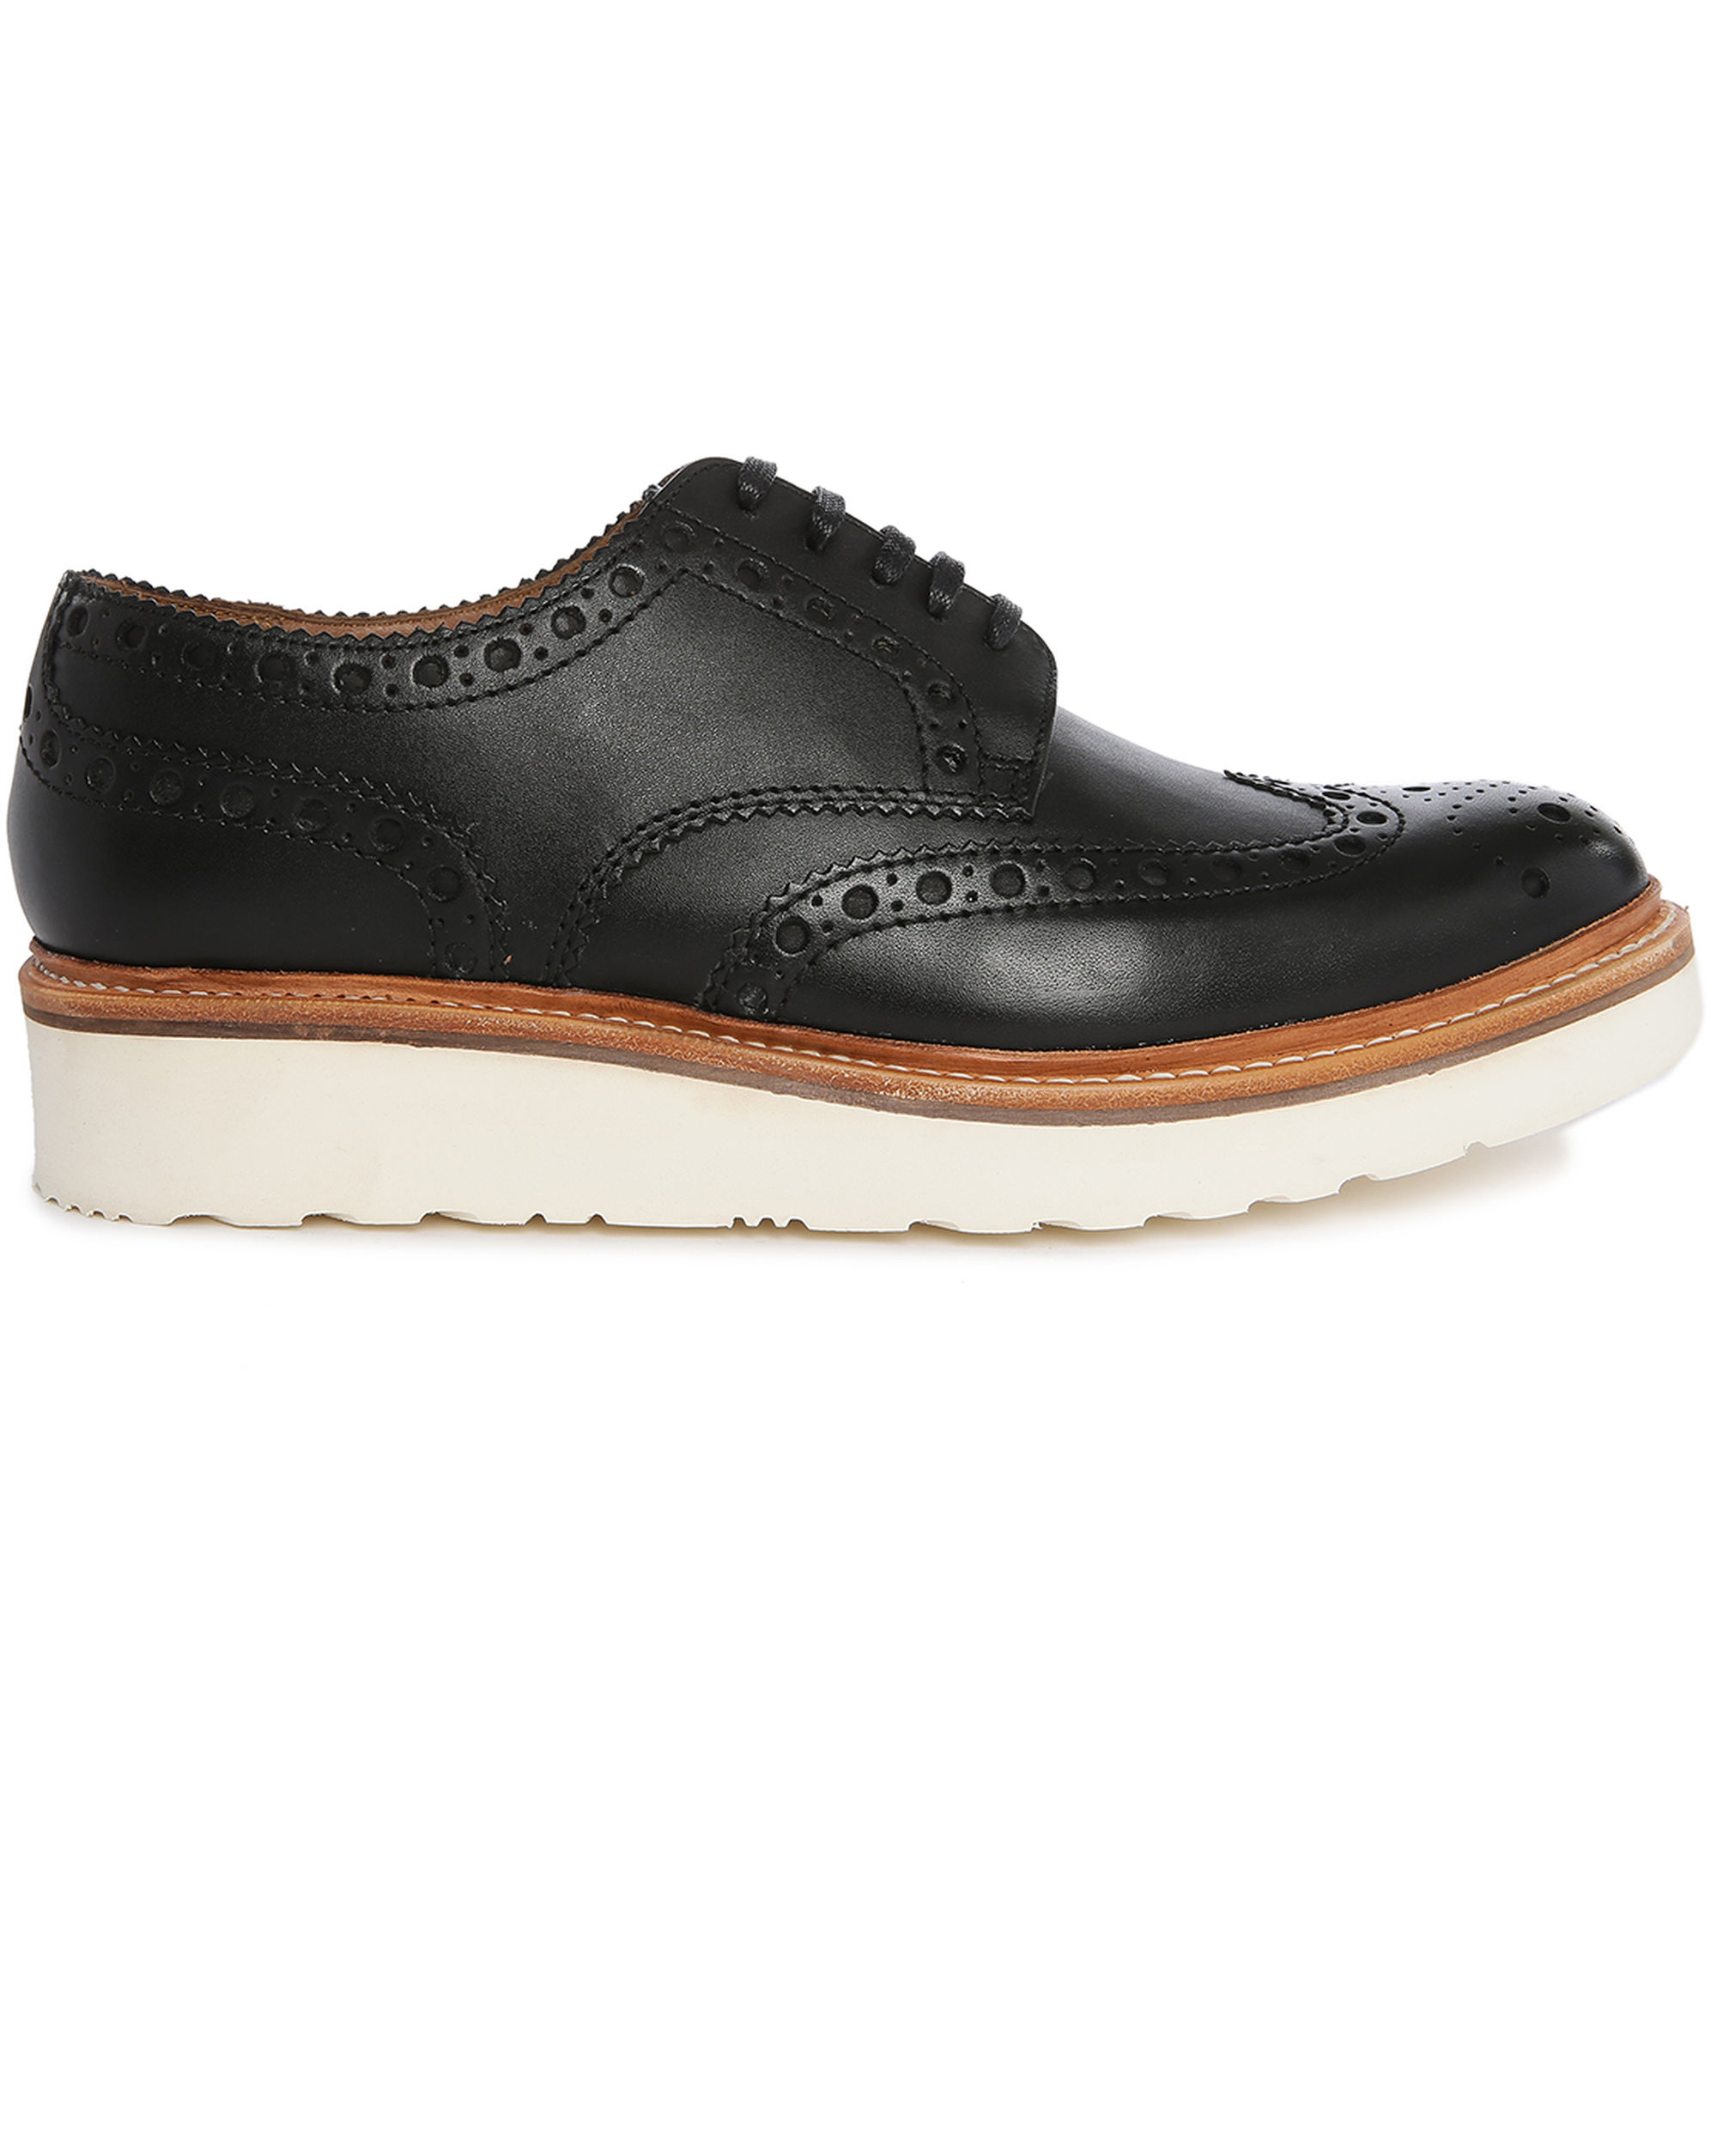 grenson archie v black brogue shoes with floral toe and